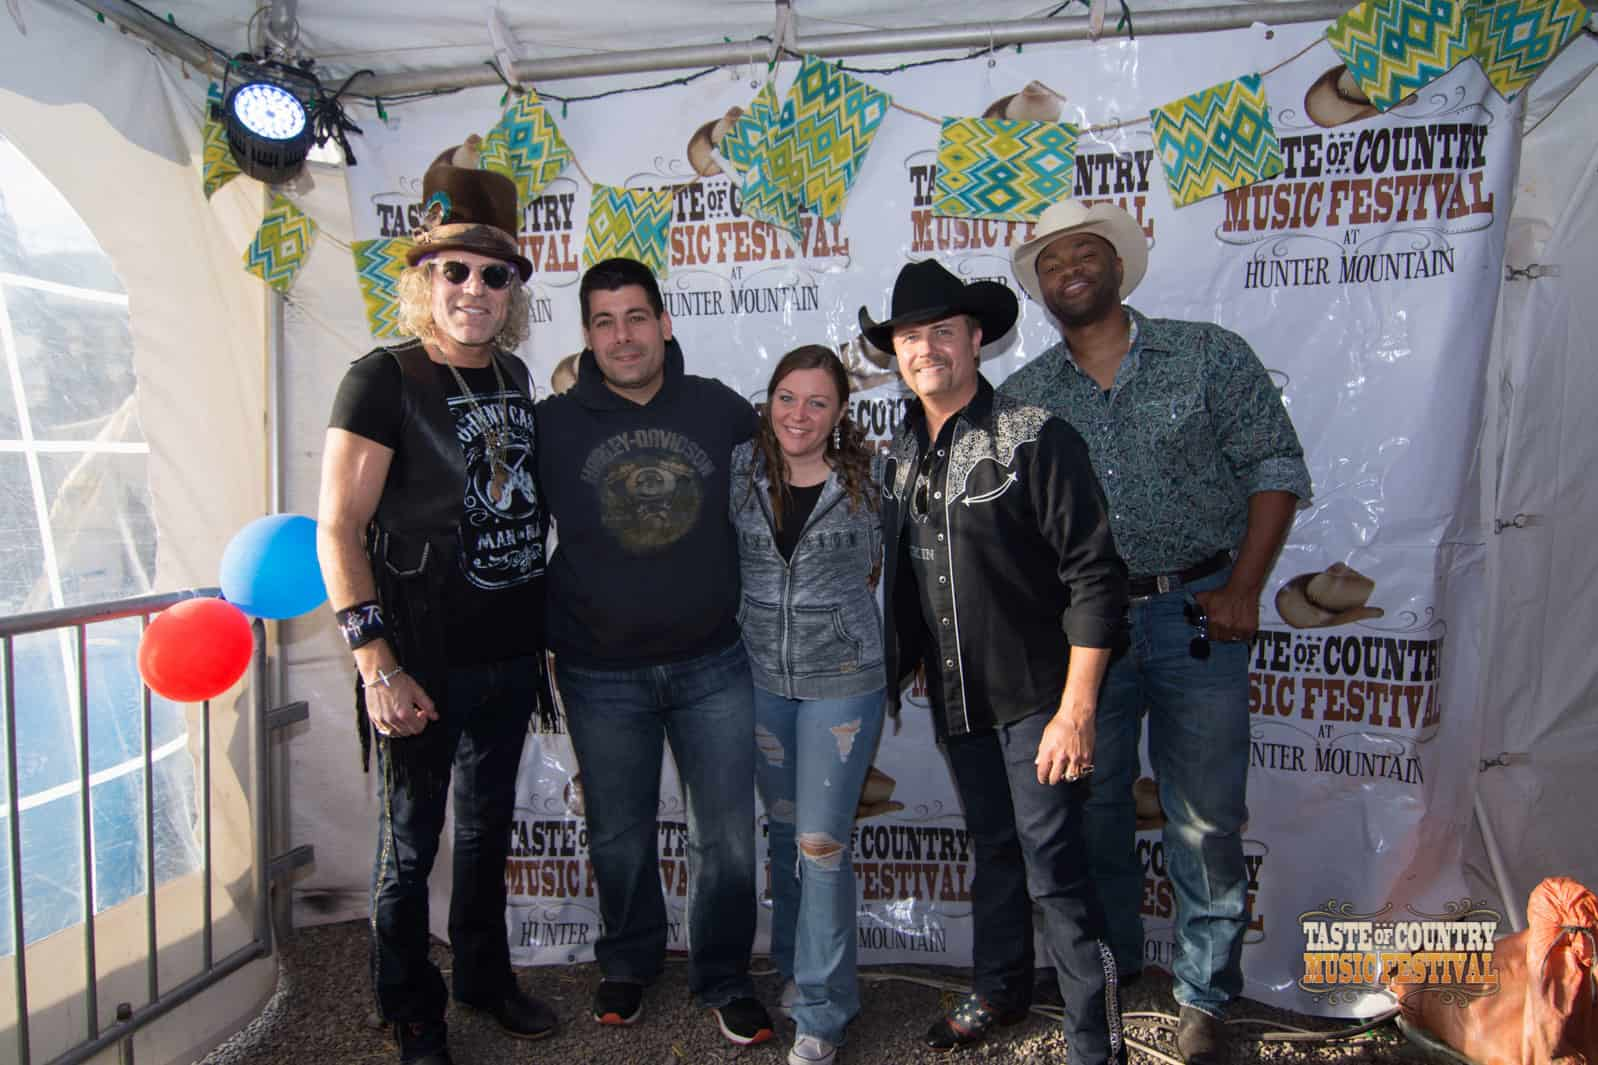 Photos Meet And Greet With Big Rich Taste Of Country